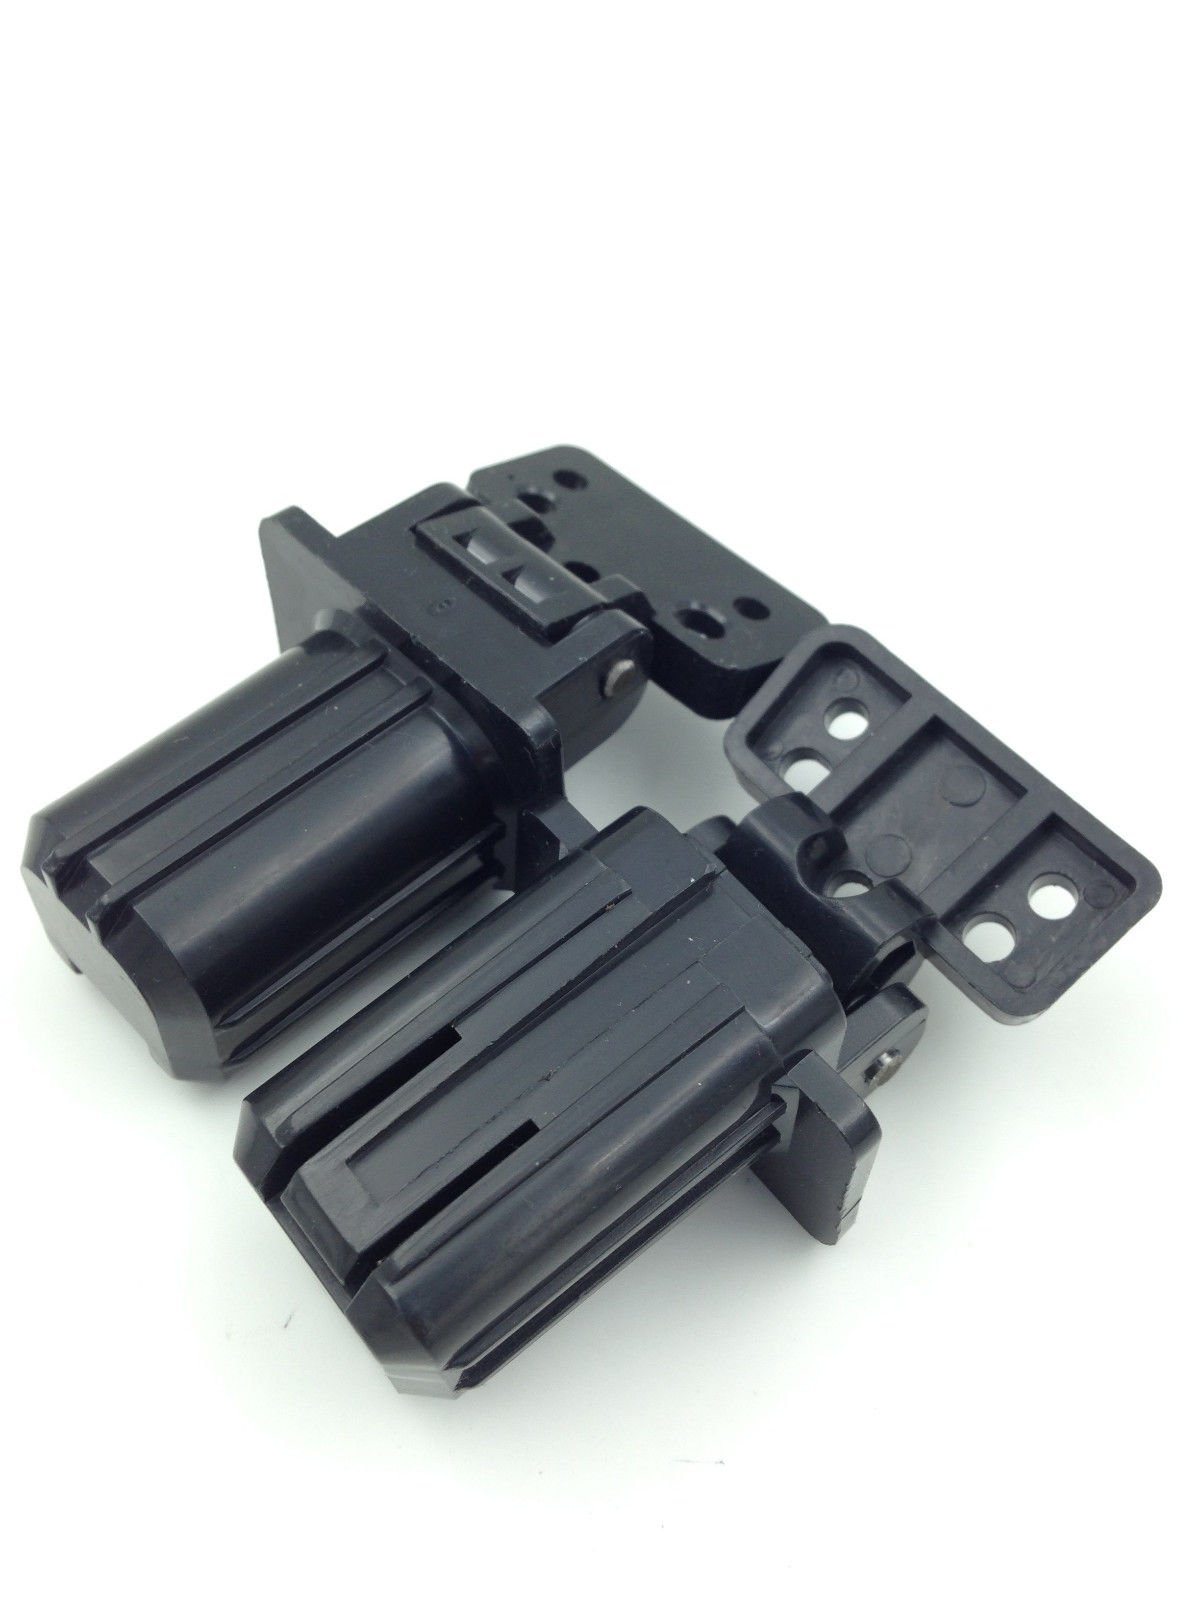 (2Pack) CF288-60027 For HP LaserJet PRO400 M425DN MFP M425DW MFP ADF Hinge assy by kuang (Image #1)